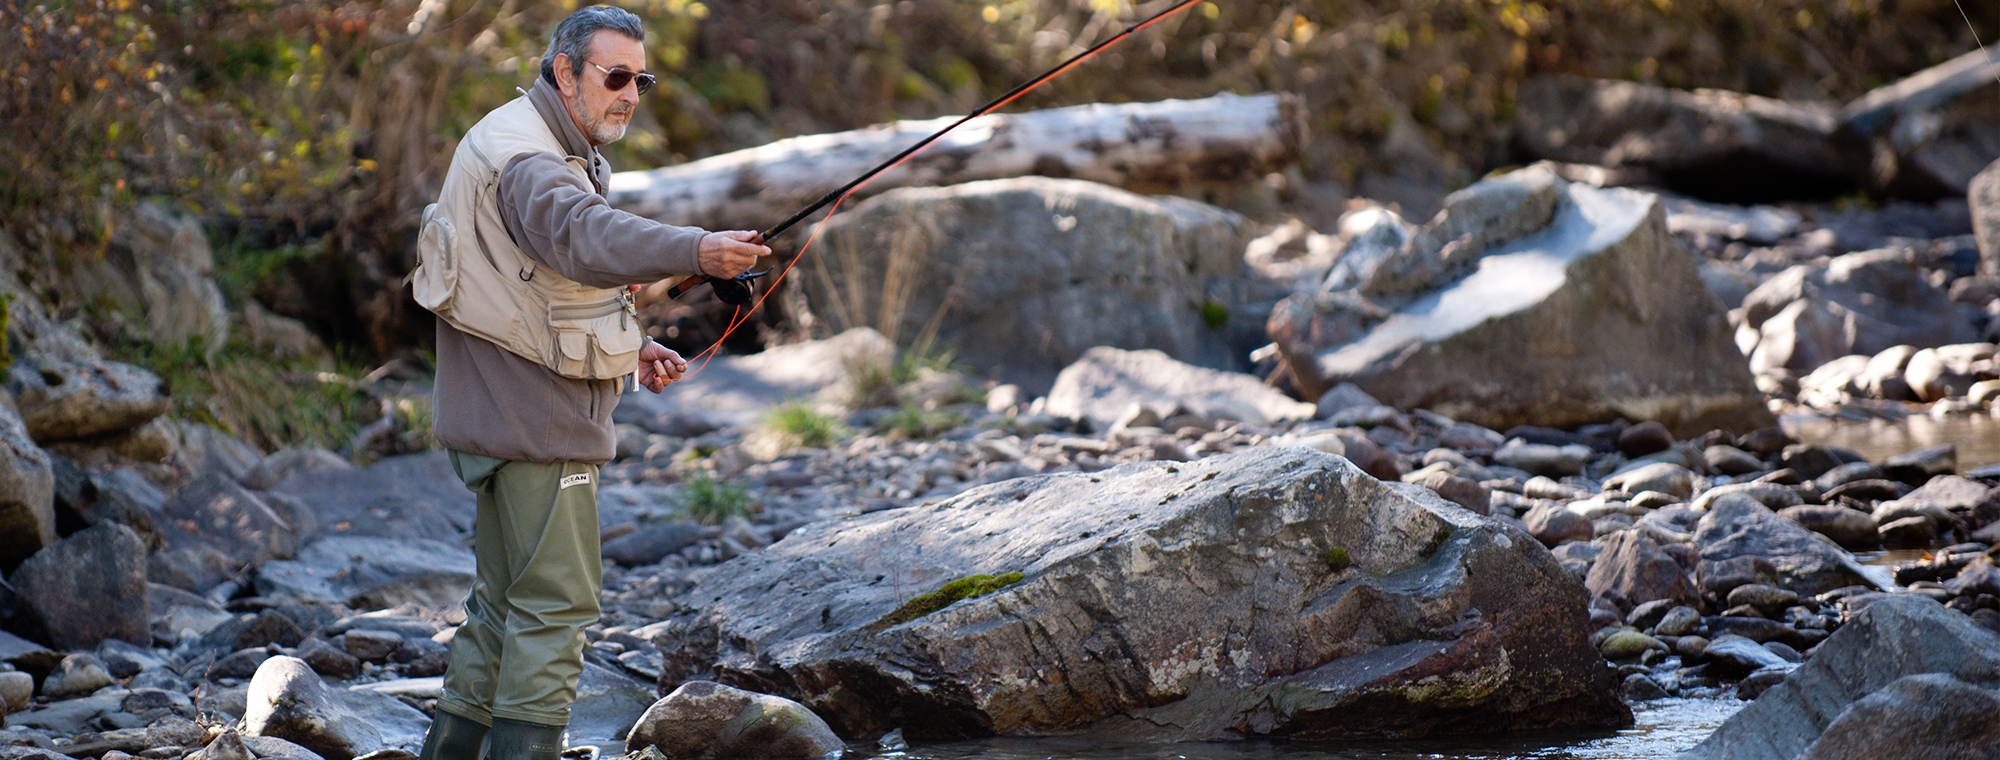 Catching grayling on Tyrolean rod. Tyrolean wand: how to catch 47